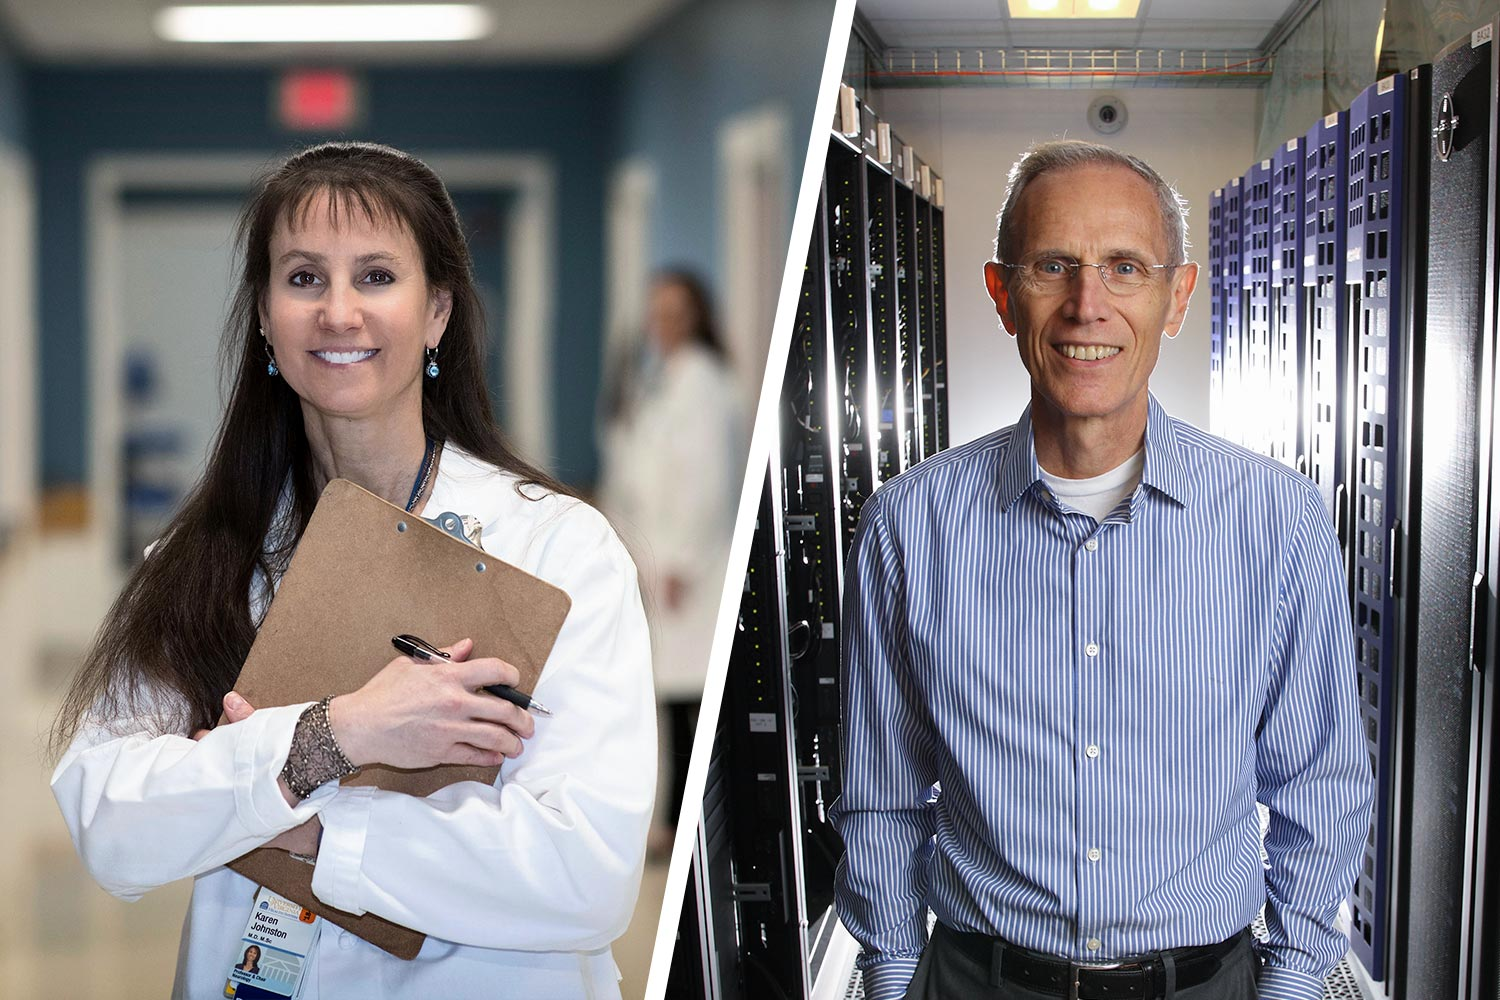 Neurologist Dr. Karen Johnston, left, and data scientist Don Brown are among the grant's principal investigators.